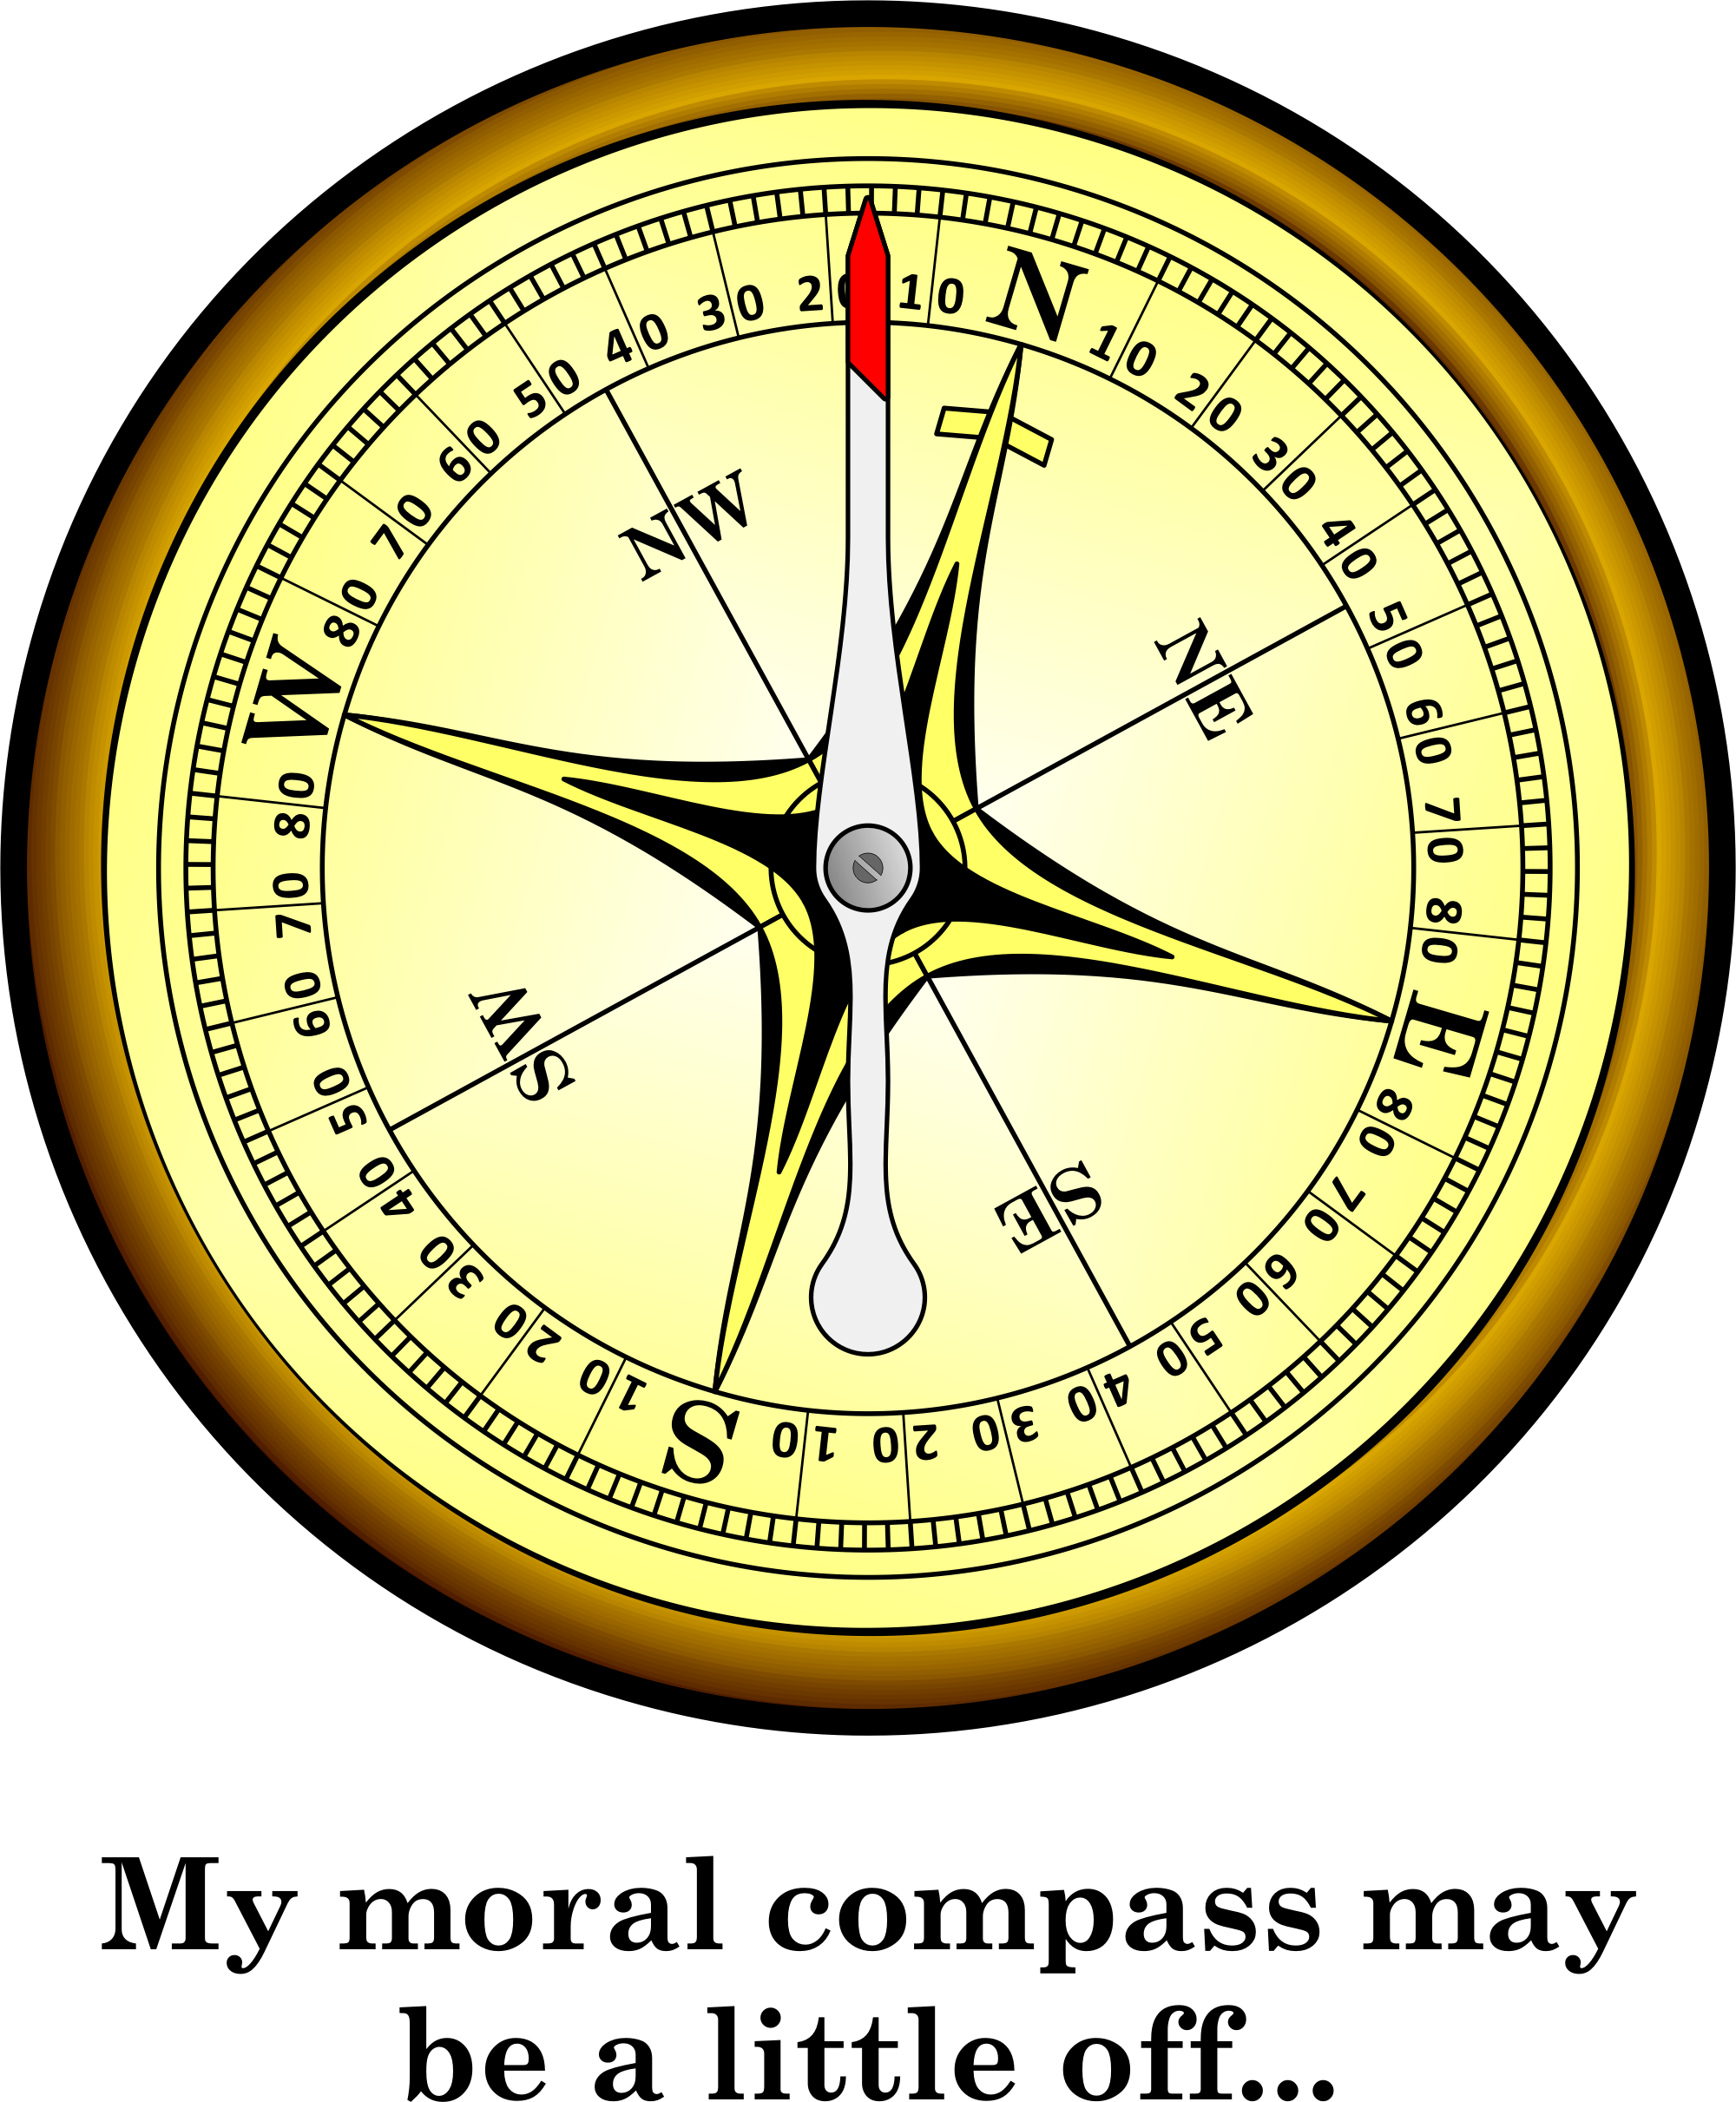 moral compass 2018-7-10 the moral compass is a set of guidelines as to what is right and wrong it is not an absolute rule there are always situations where just about anything is justified, but those are the exceptions.